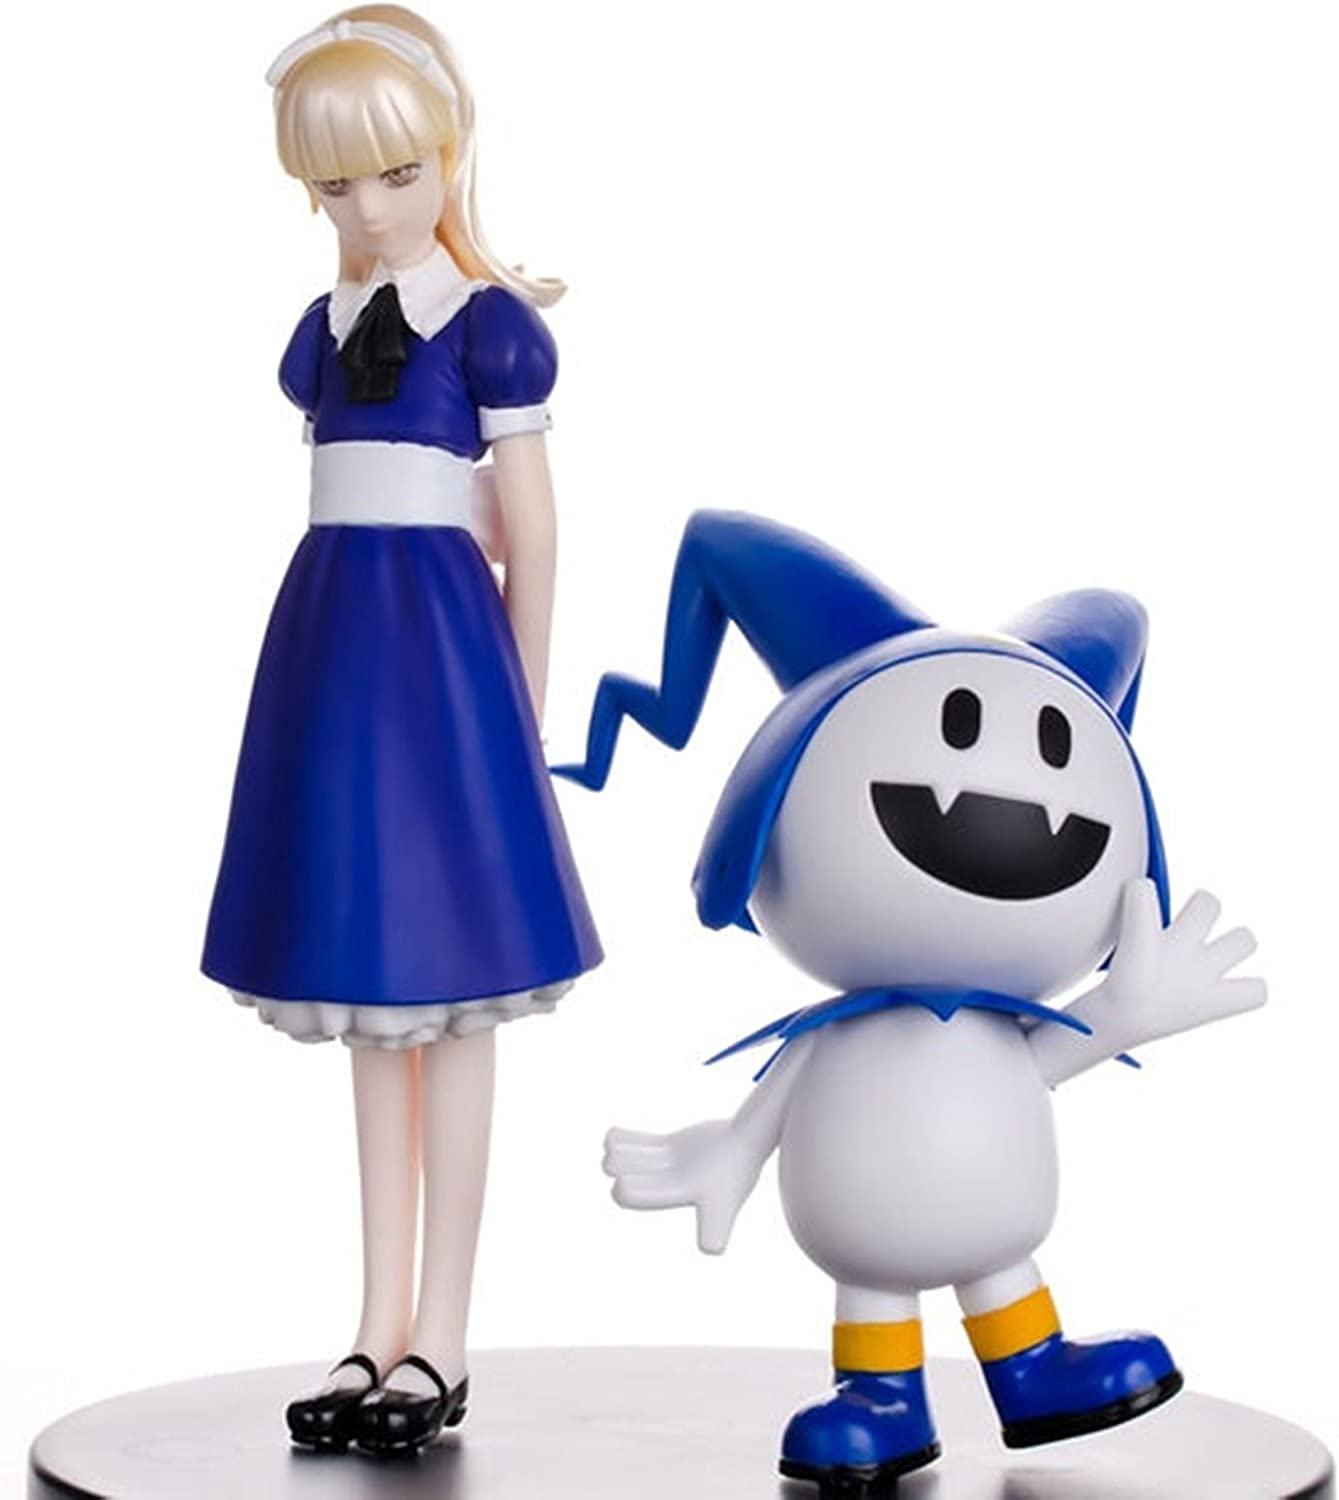 Shin Megami Tensei Real Figure 4 Single Item Alice Jack Frost Japan Import By Persona Toys Games